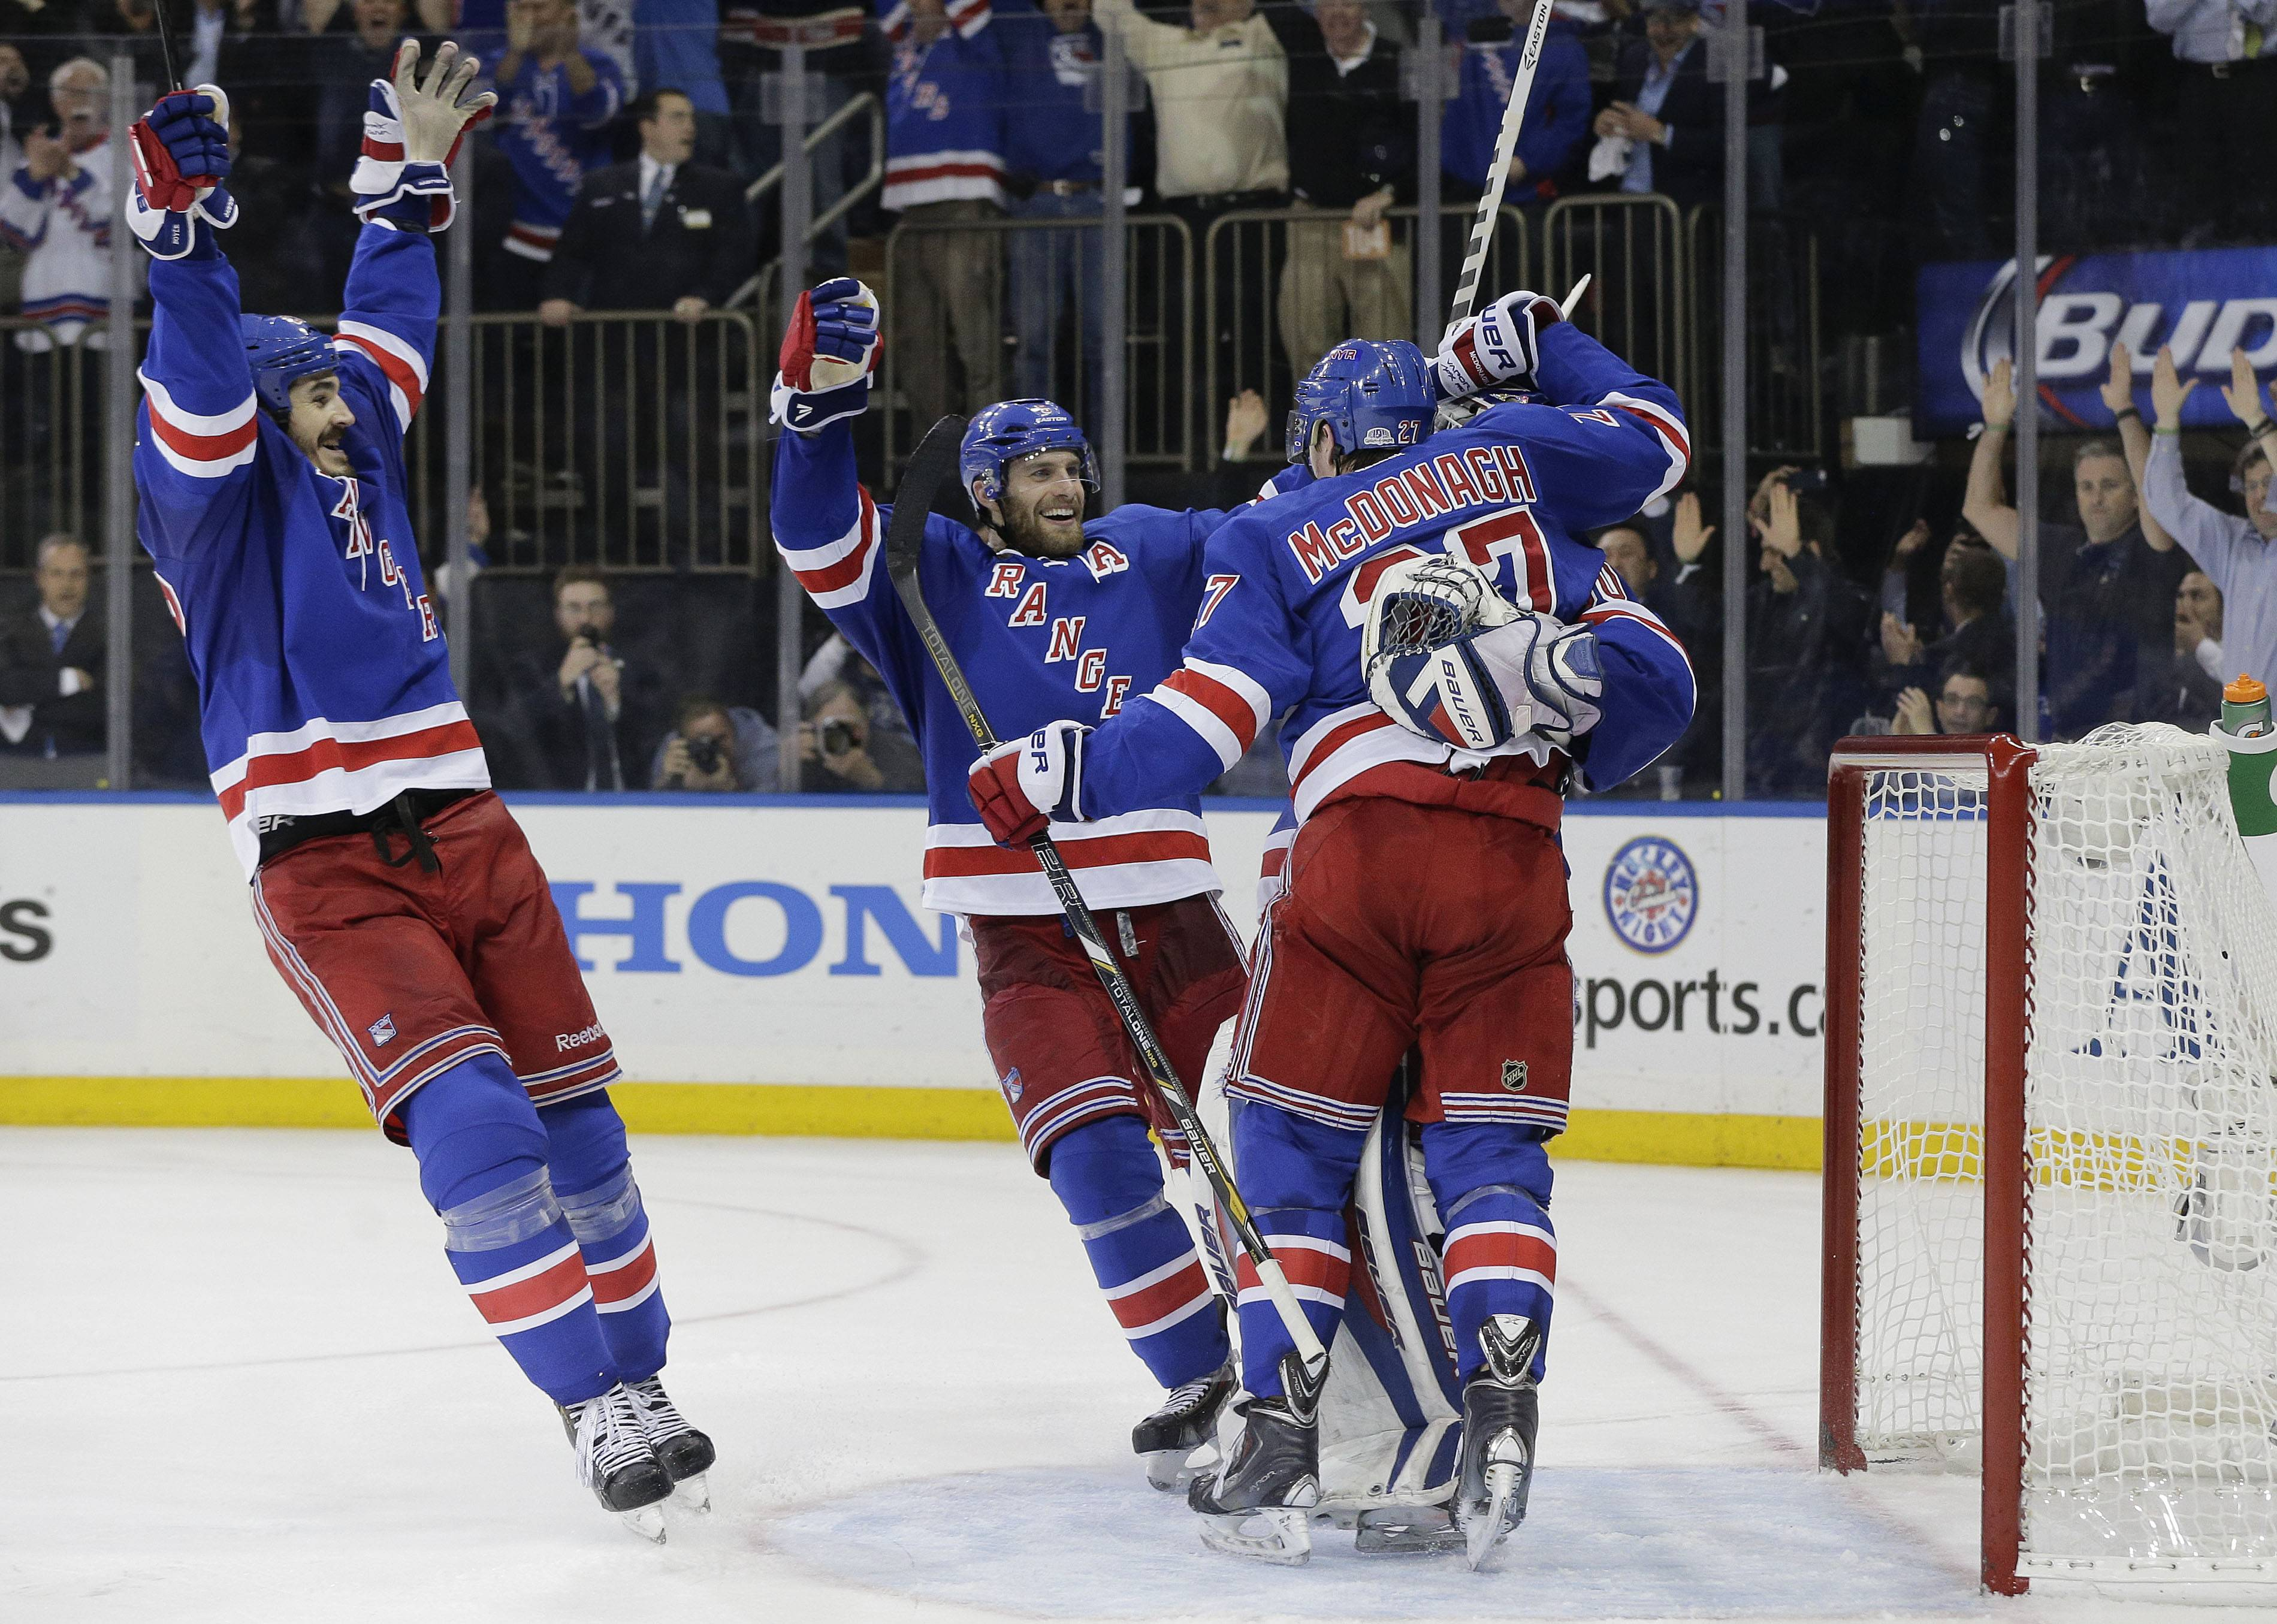 Dominic Moore scored in the second period, Henrik Lundqvist bounced back from his worst performance in the playoffs and the New York Rangers beat the Montreal Canadiens 1-0 on Thursday night to advance to the Stanley Cup finals. The Rangers are in the championship round for the first time since winning it all in 1994.